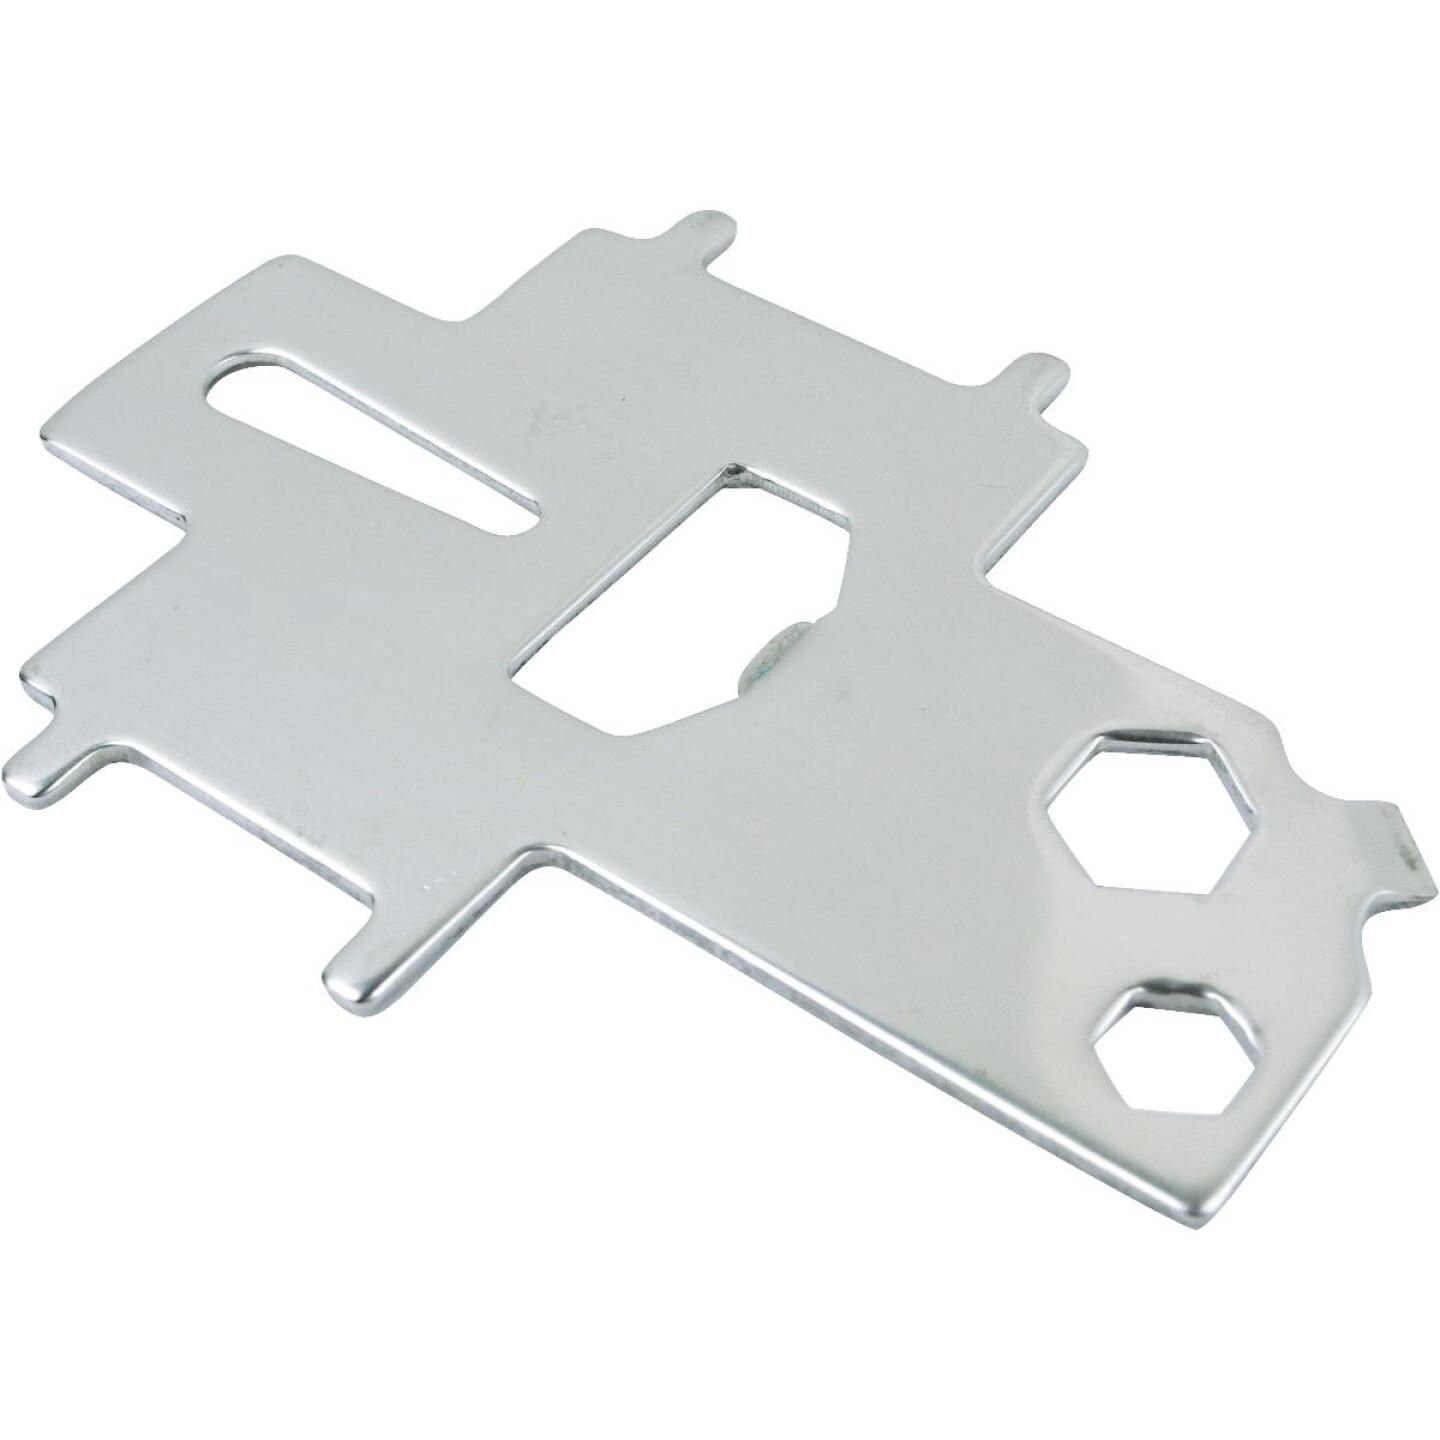 Seachoice Non-Magnetic Stainless Steel 3-7/8 In. Deck Plate Key & Tool Image 1